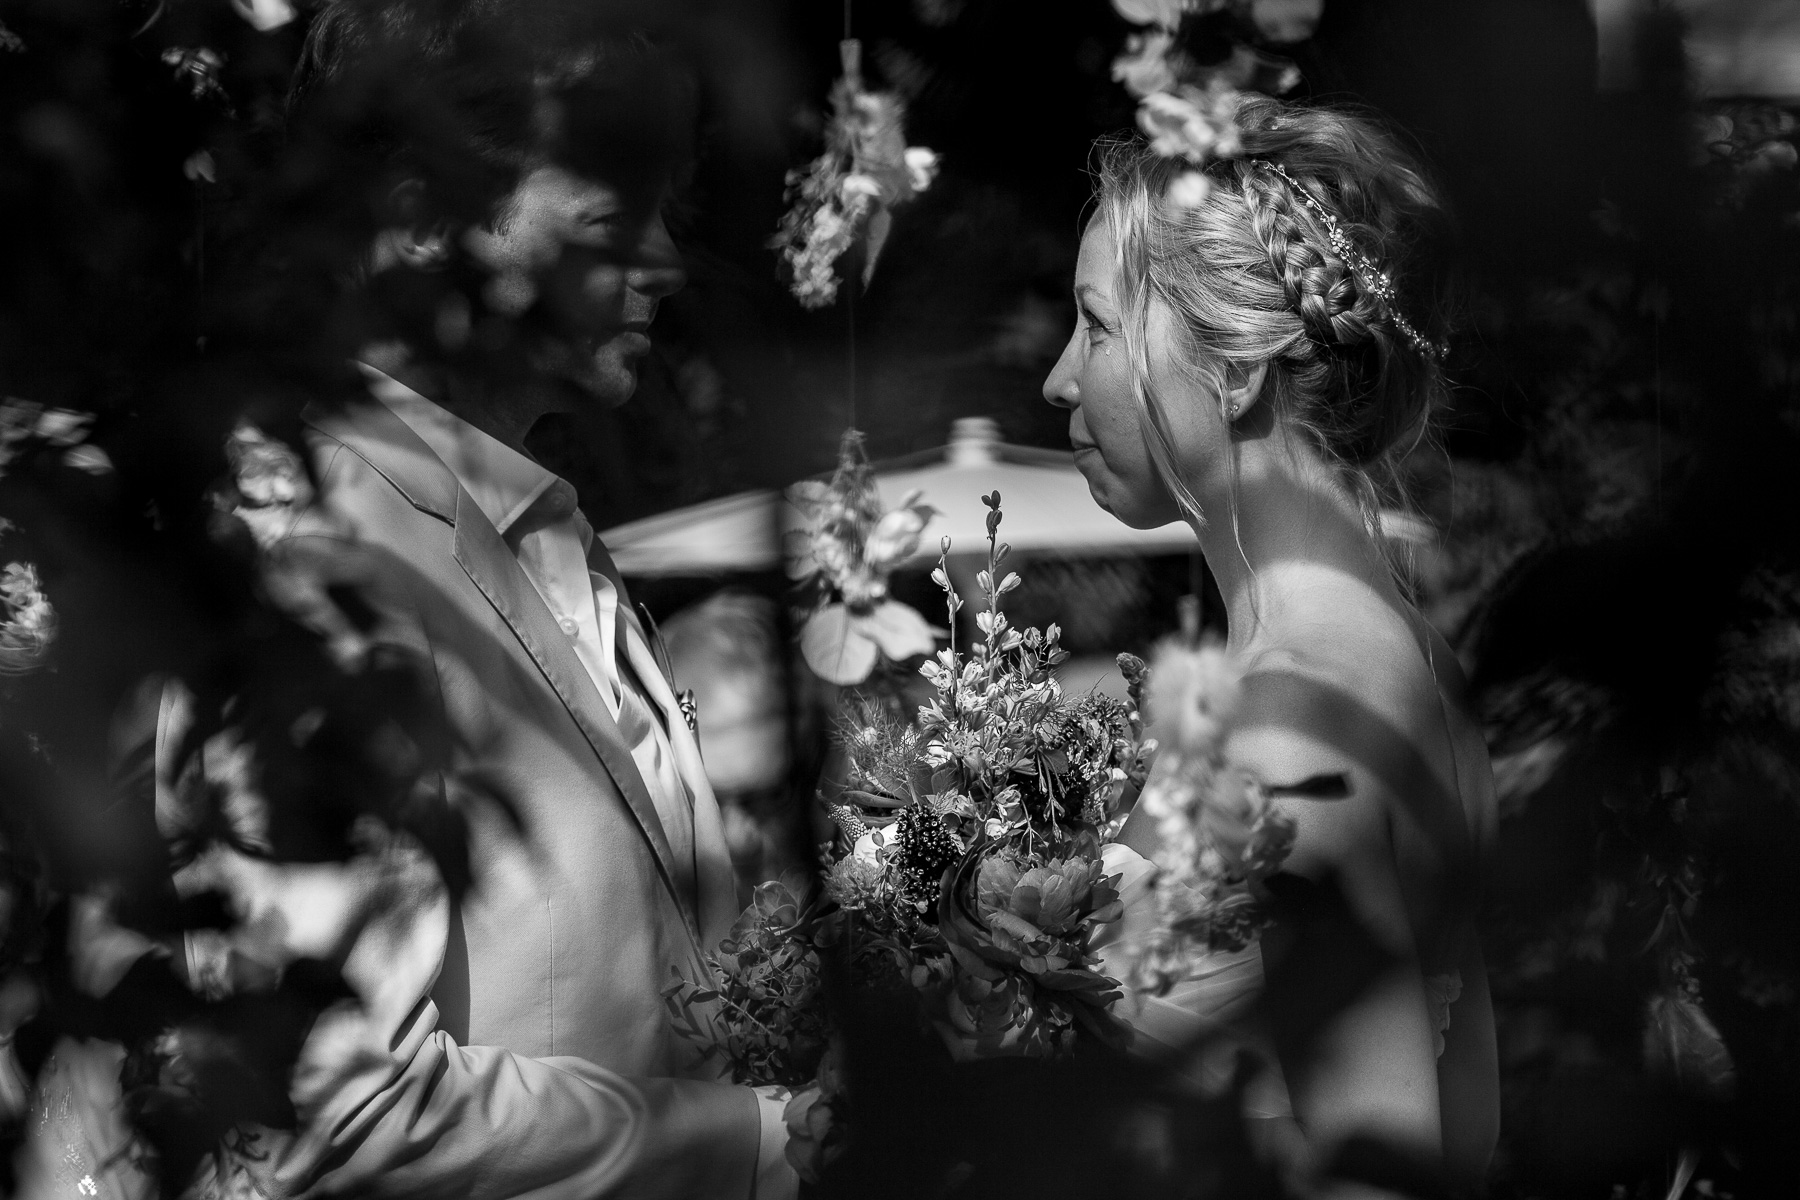 a bride during her wedding ceremony looking intensely at her husband with a tear on her cheek